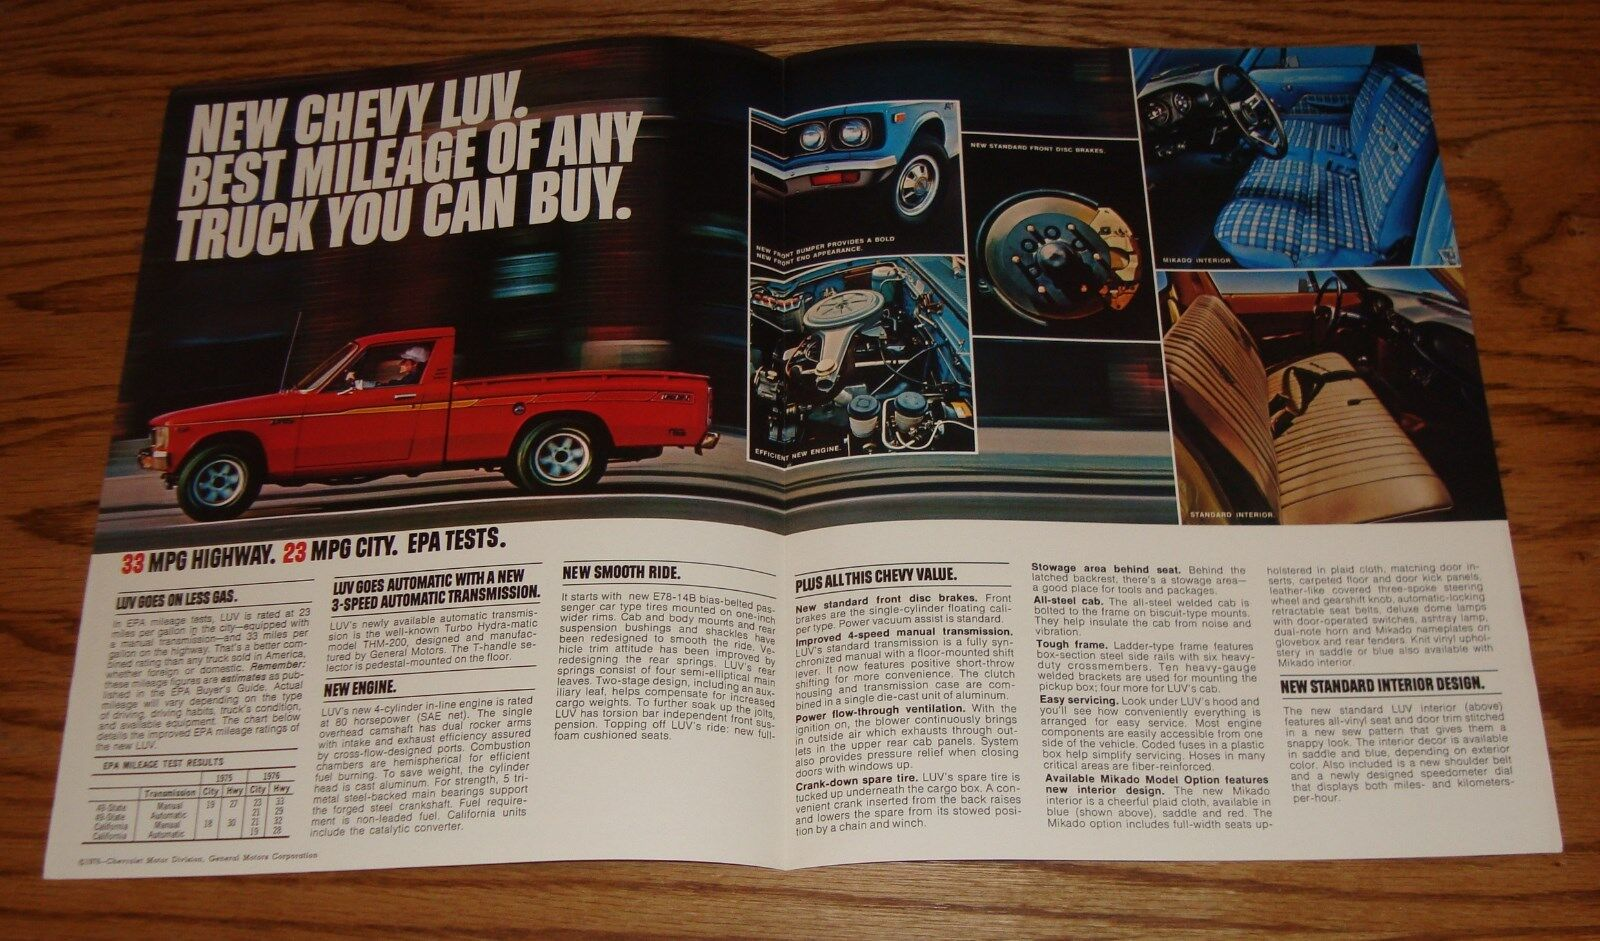 Original 1976 Chevrolet Truck Luv Sales Brochure 76 Chevy 700 1980 Specs 2 Of See More